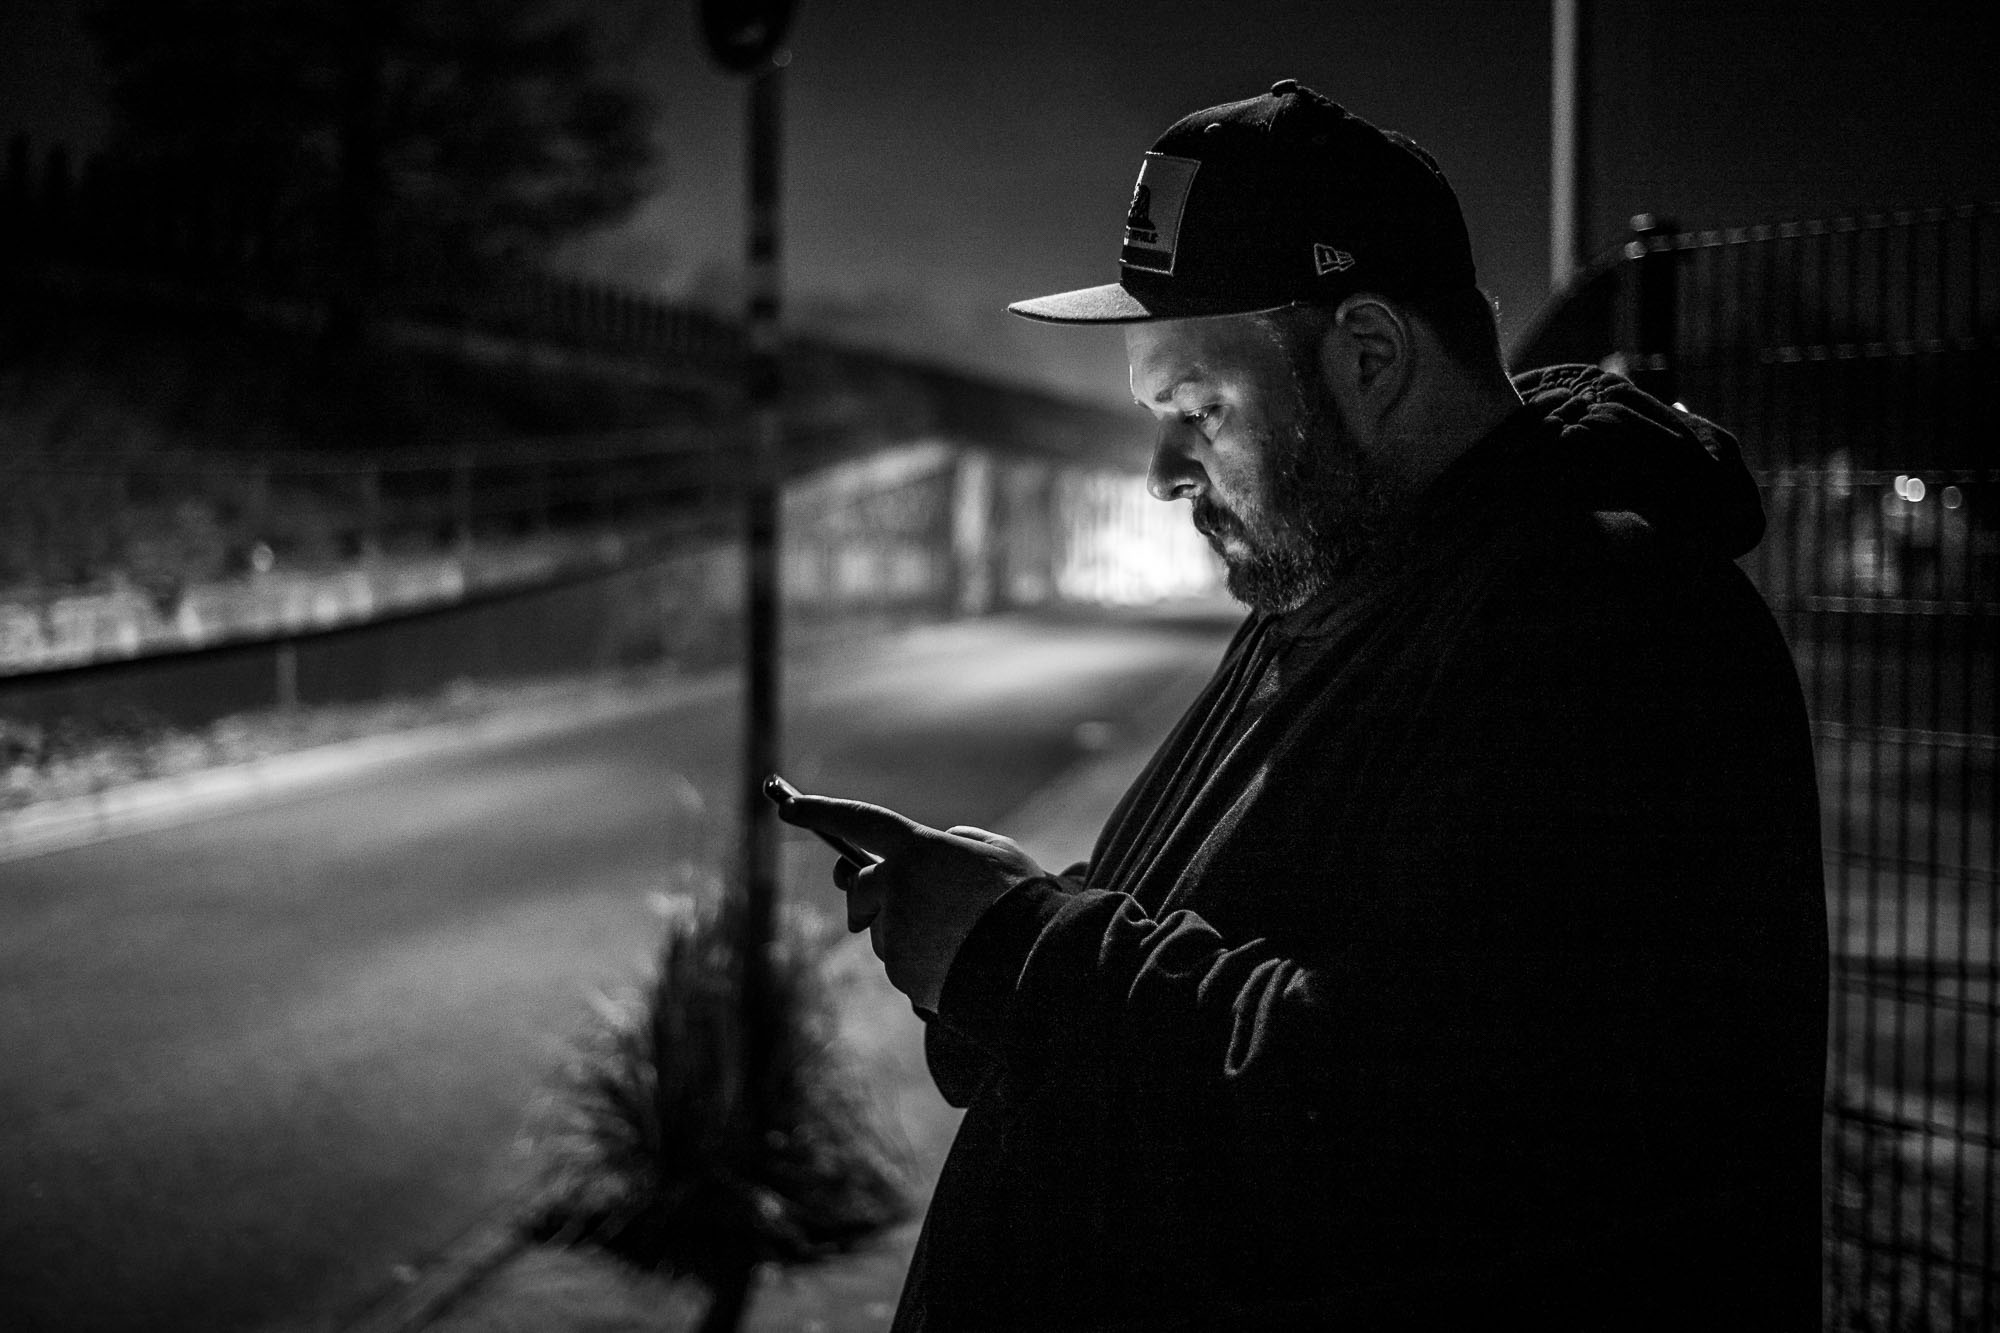 Pepo, on a street at night, illuminated by his phone